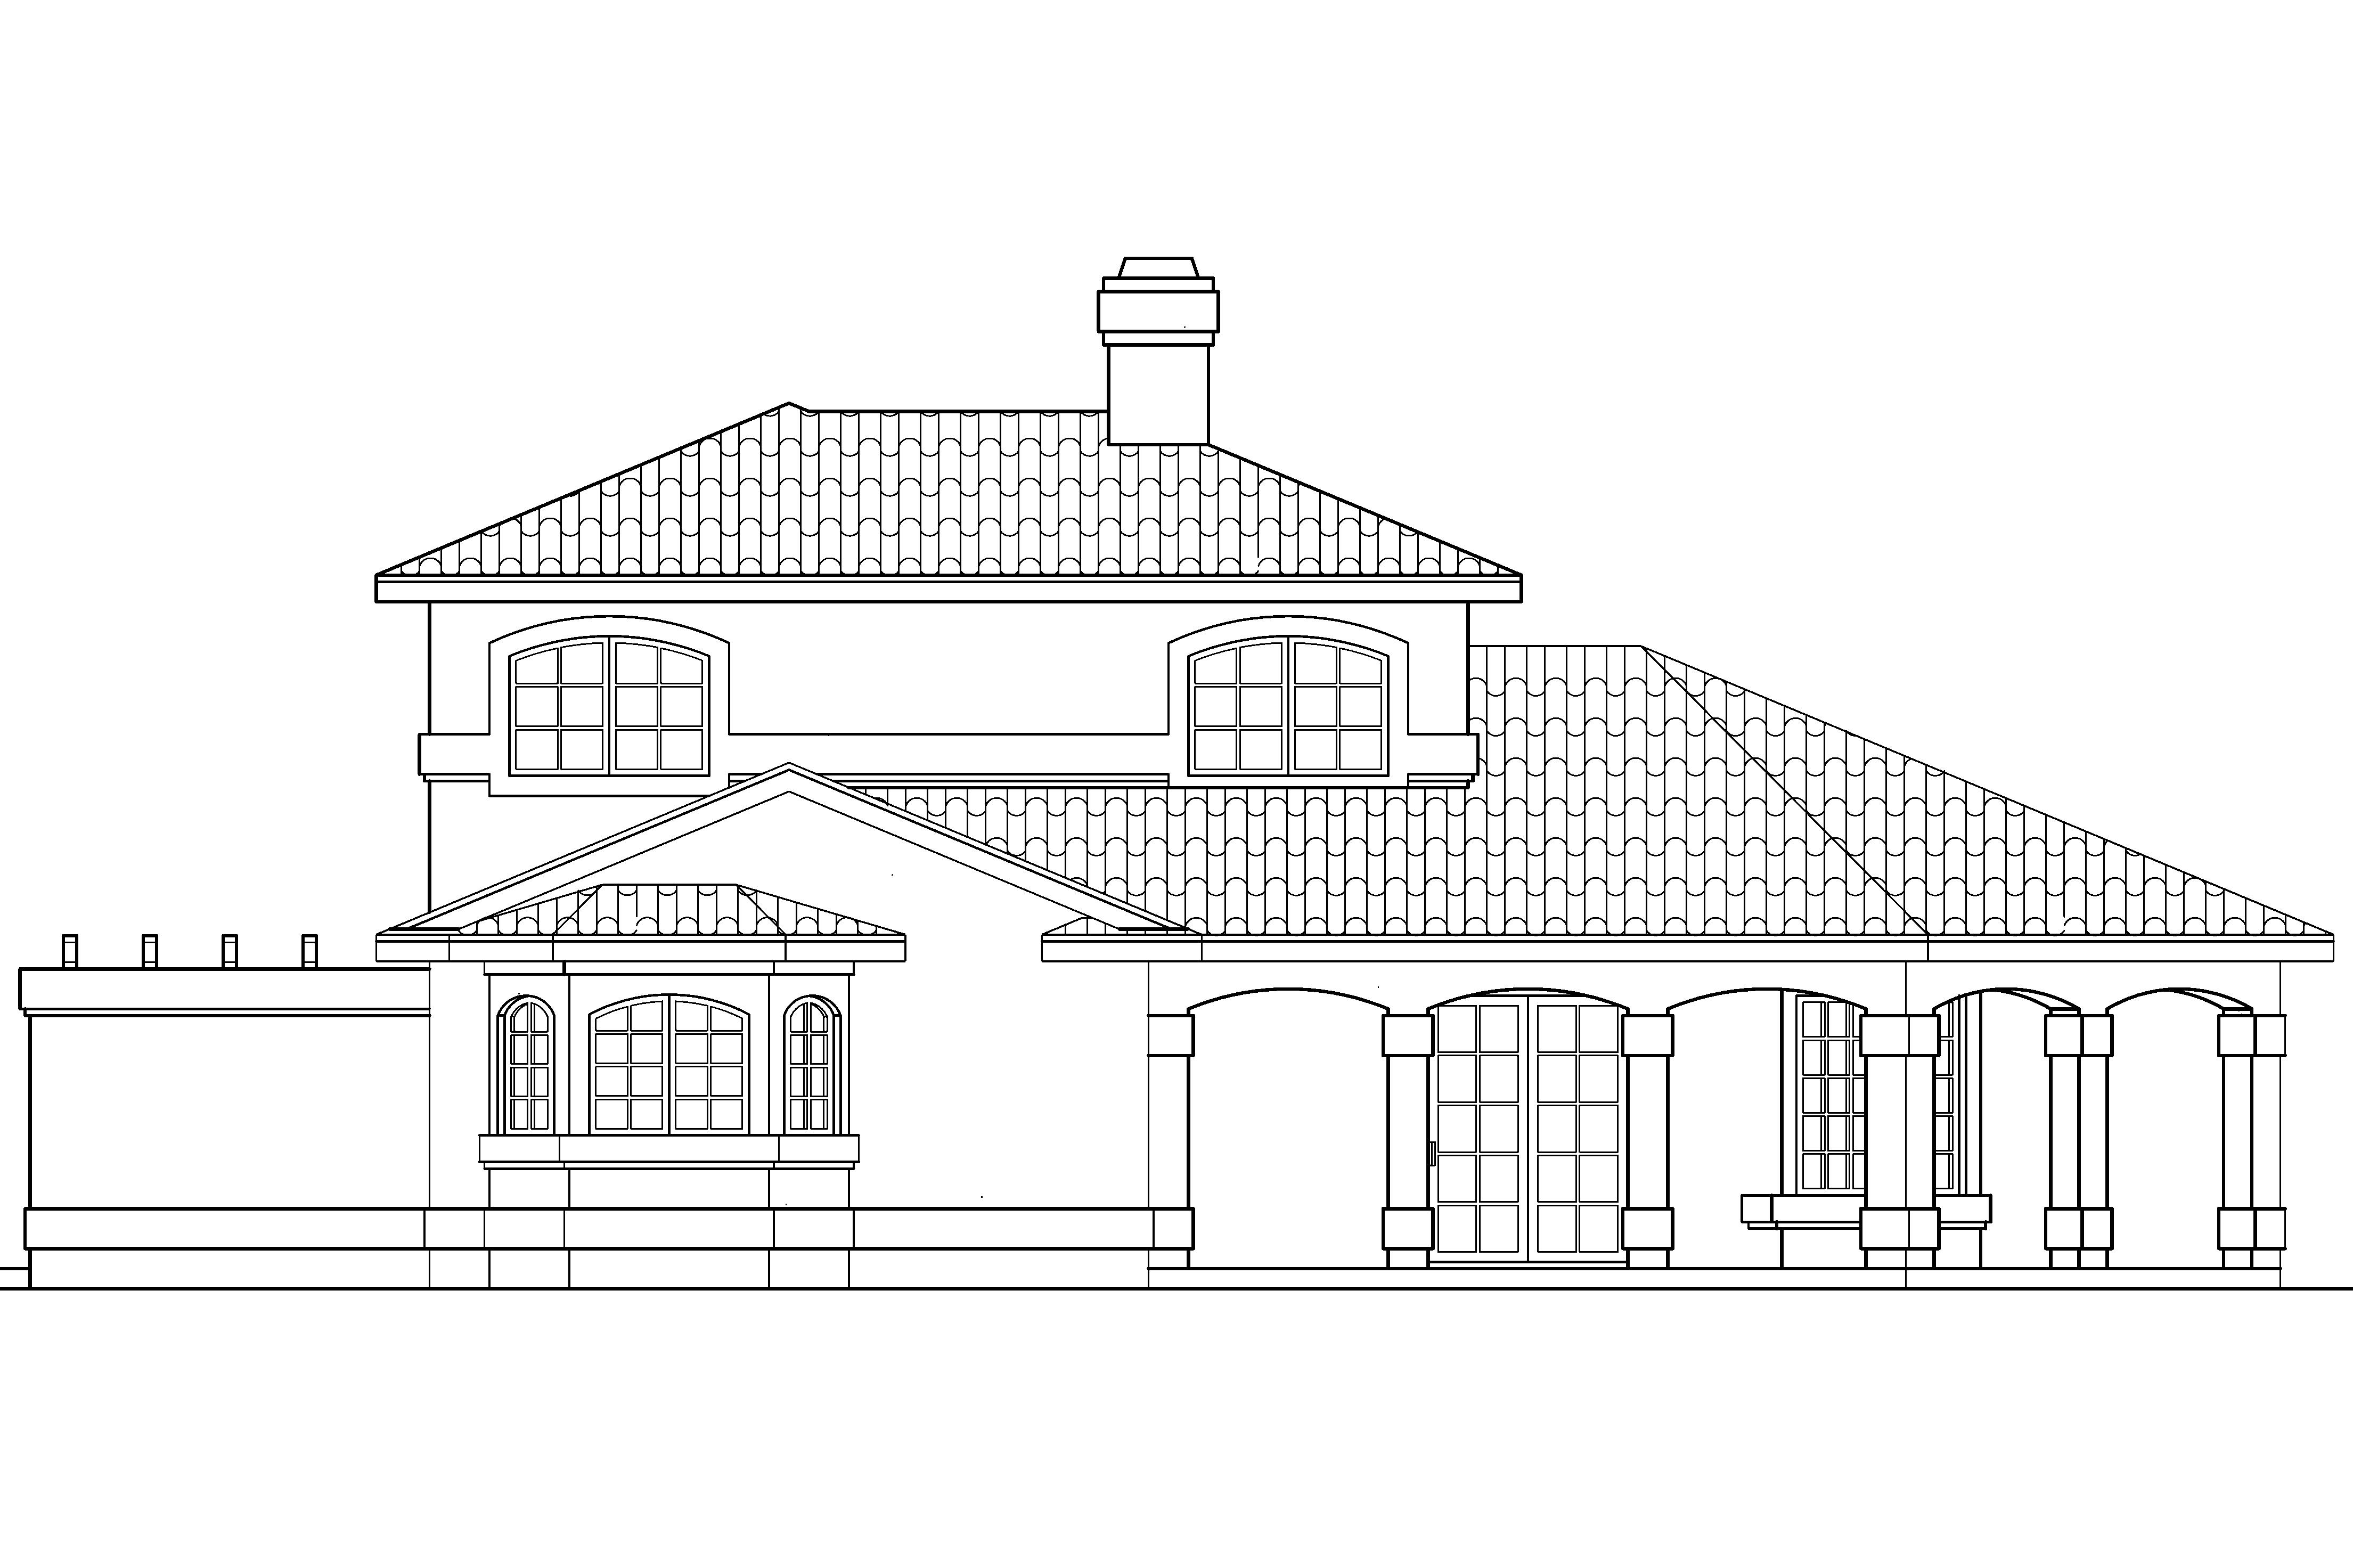 Mediterranean house plans lauderdale 11 037 associated for Southwest house plans